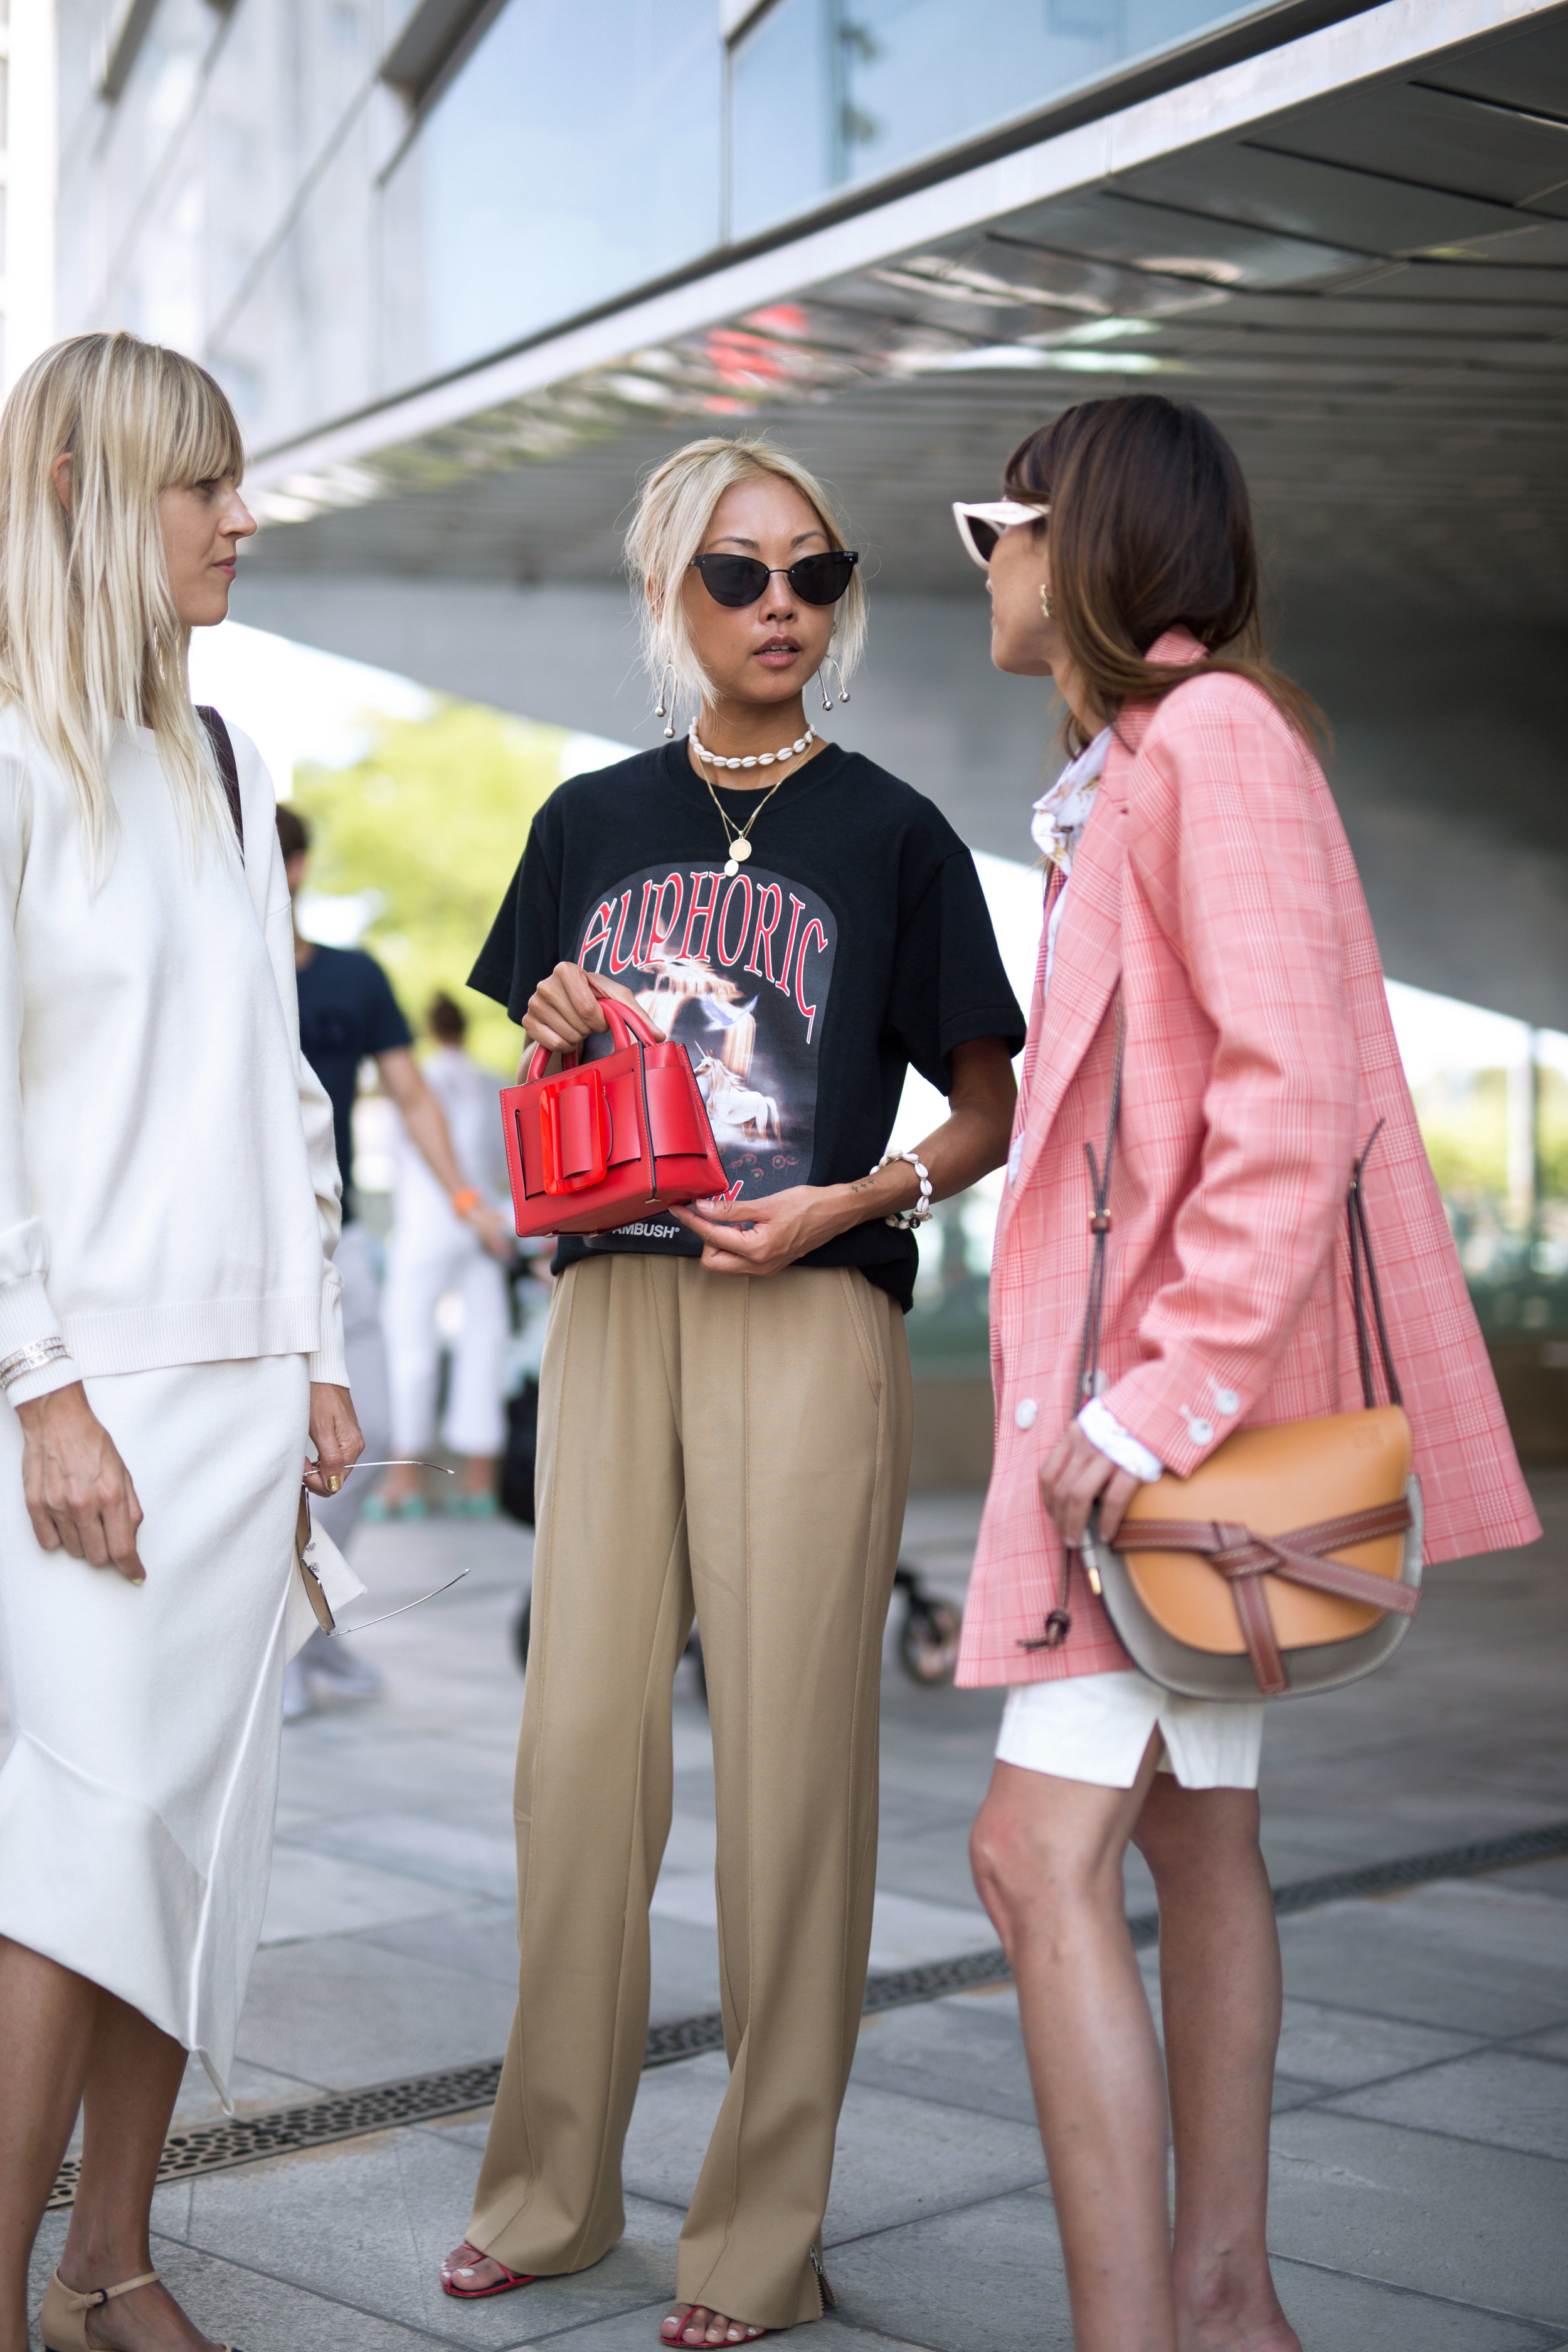 TheStreetland_Copenhagen_Fashion_Week_SS19_54.jpg